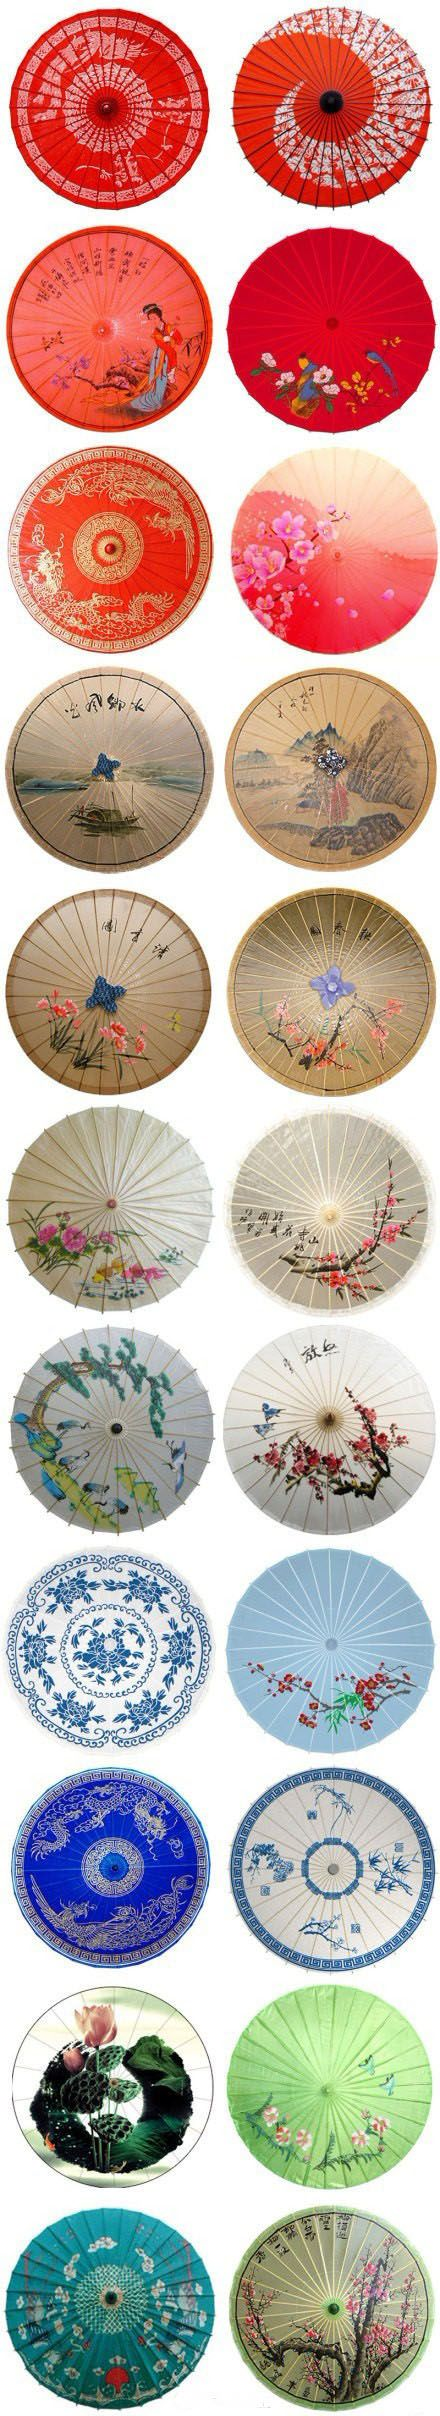 Handmade umbrellas oriental japanese birds oranges blues greens tans you name it they are all unique